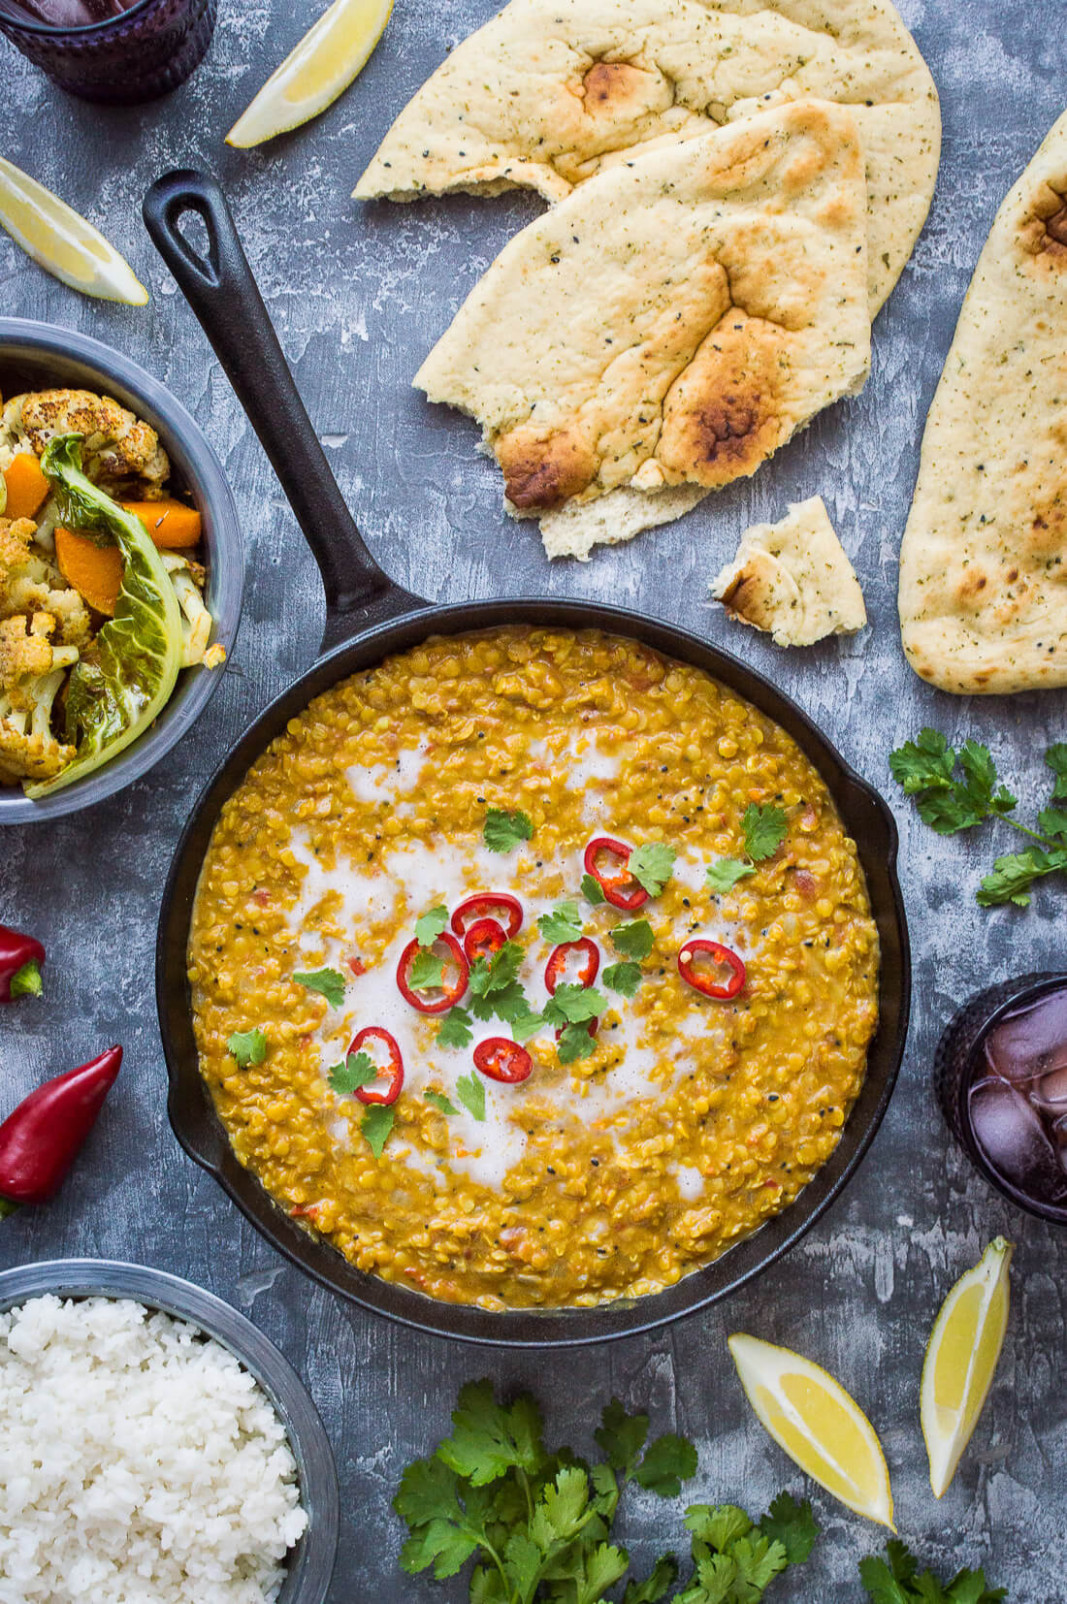 Red Lentil Dhal With Roasted Cauliflower And Butternut Squash - Recipes Lentils Vegetarian